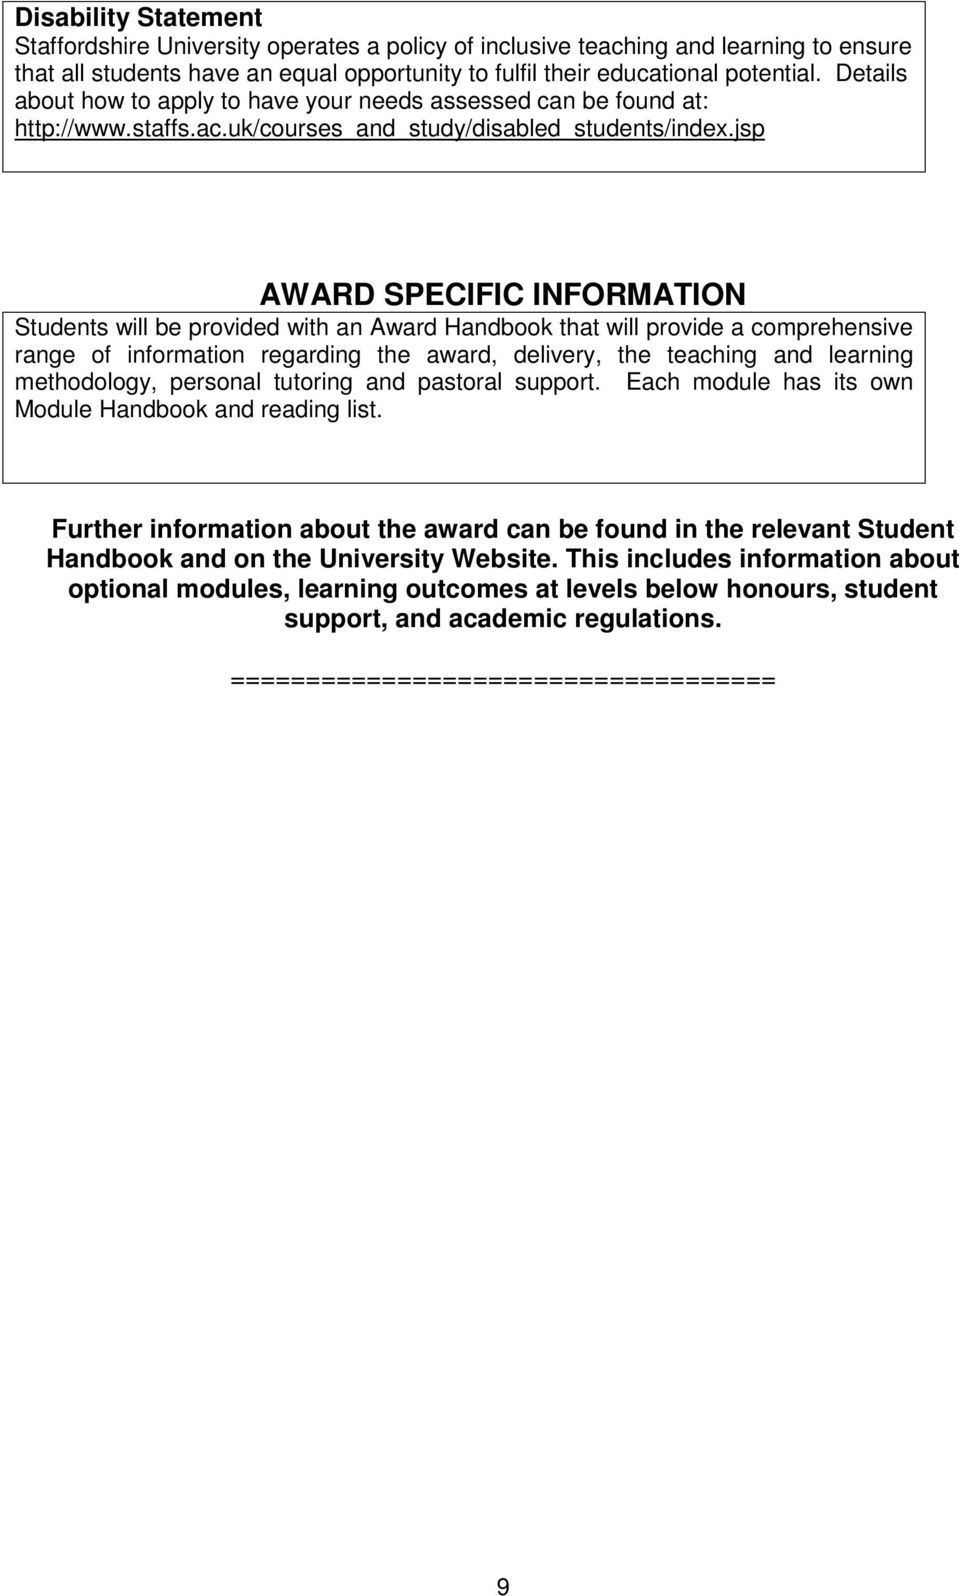 jsp AWARD SPECIFIC INFORMATION Students will be provided with an Award Handbook that will provide a comprehensive range of information regarding the award, delivery, the teaching and learning